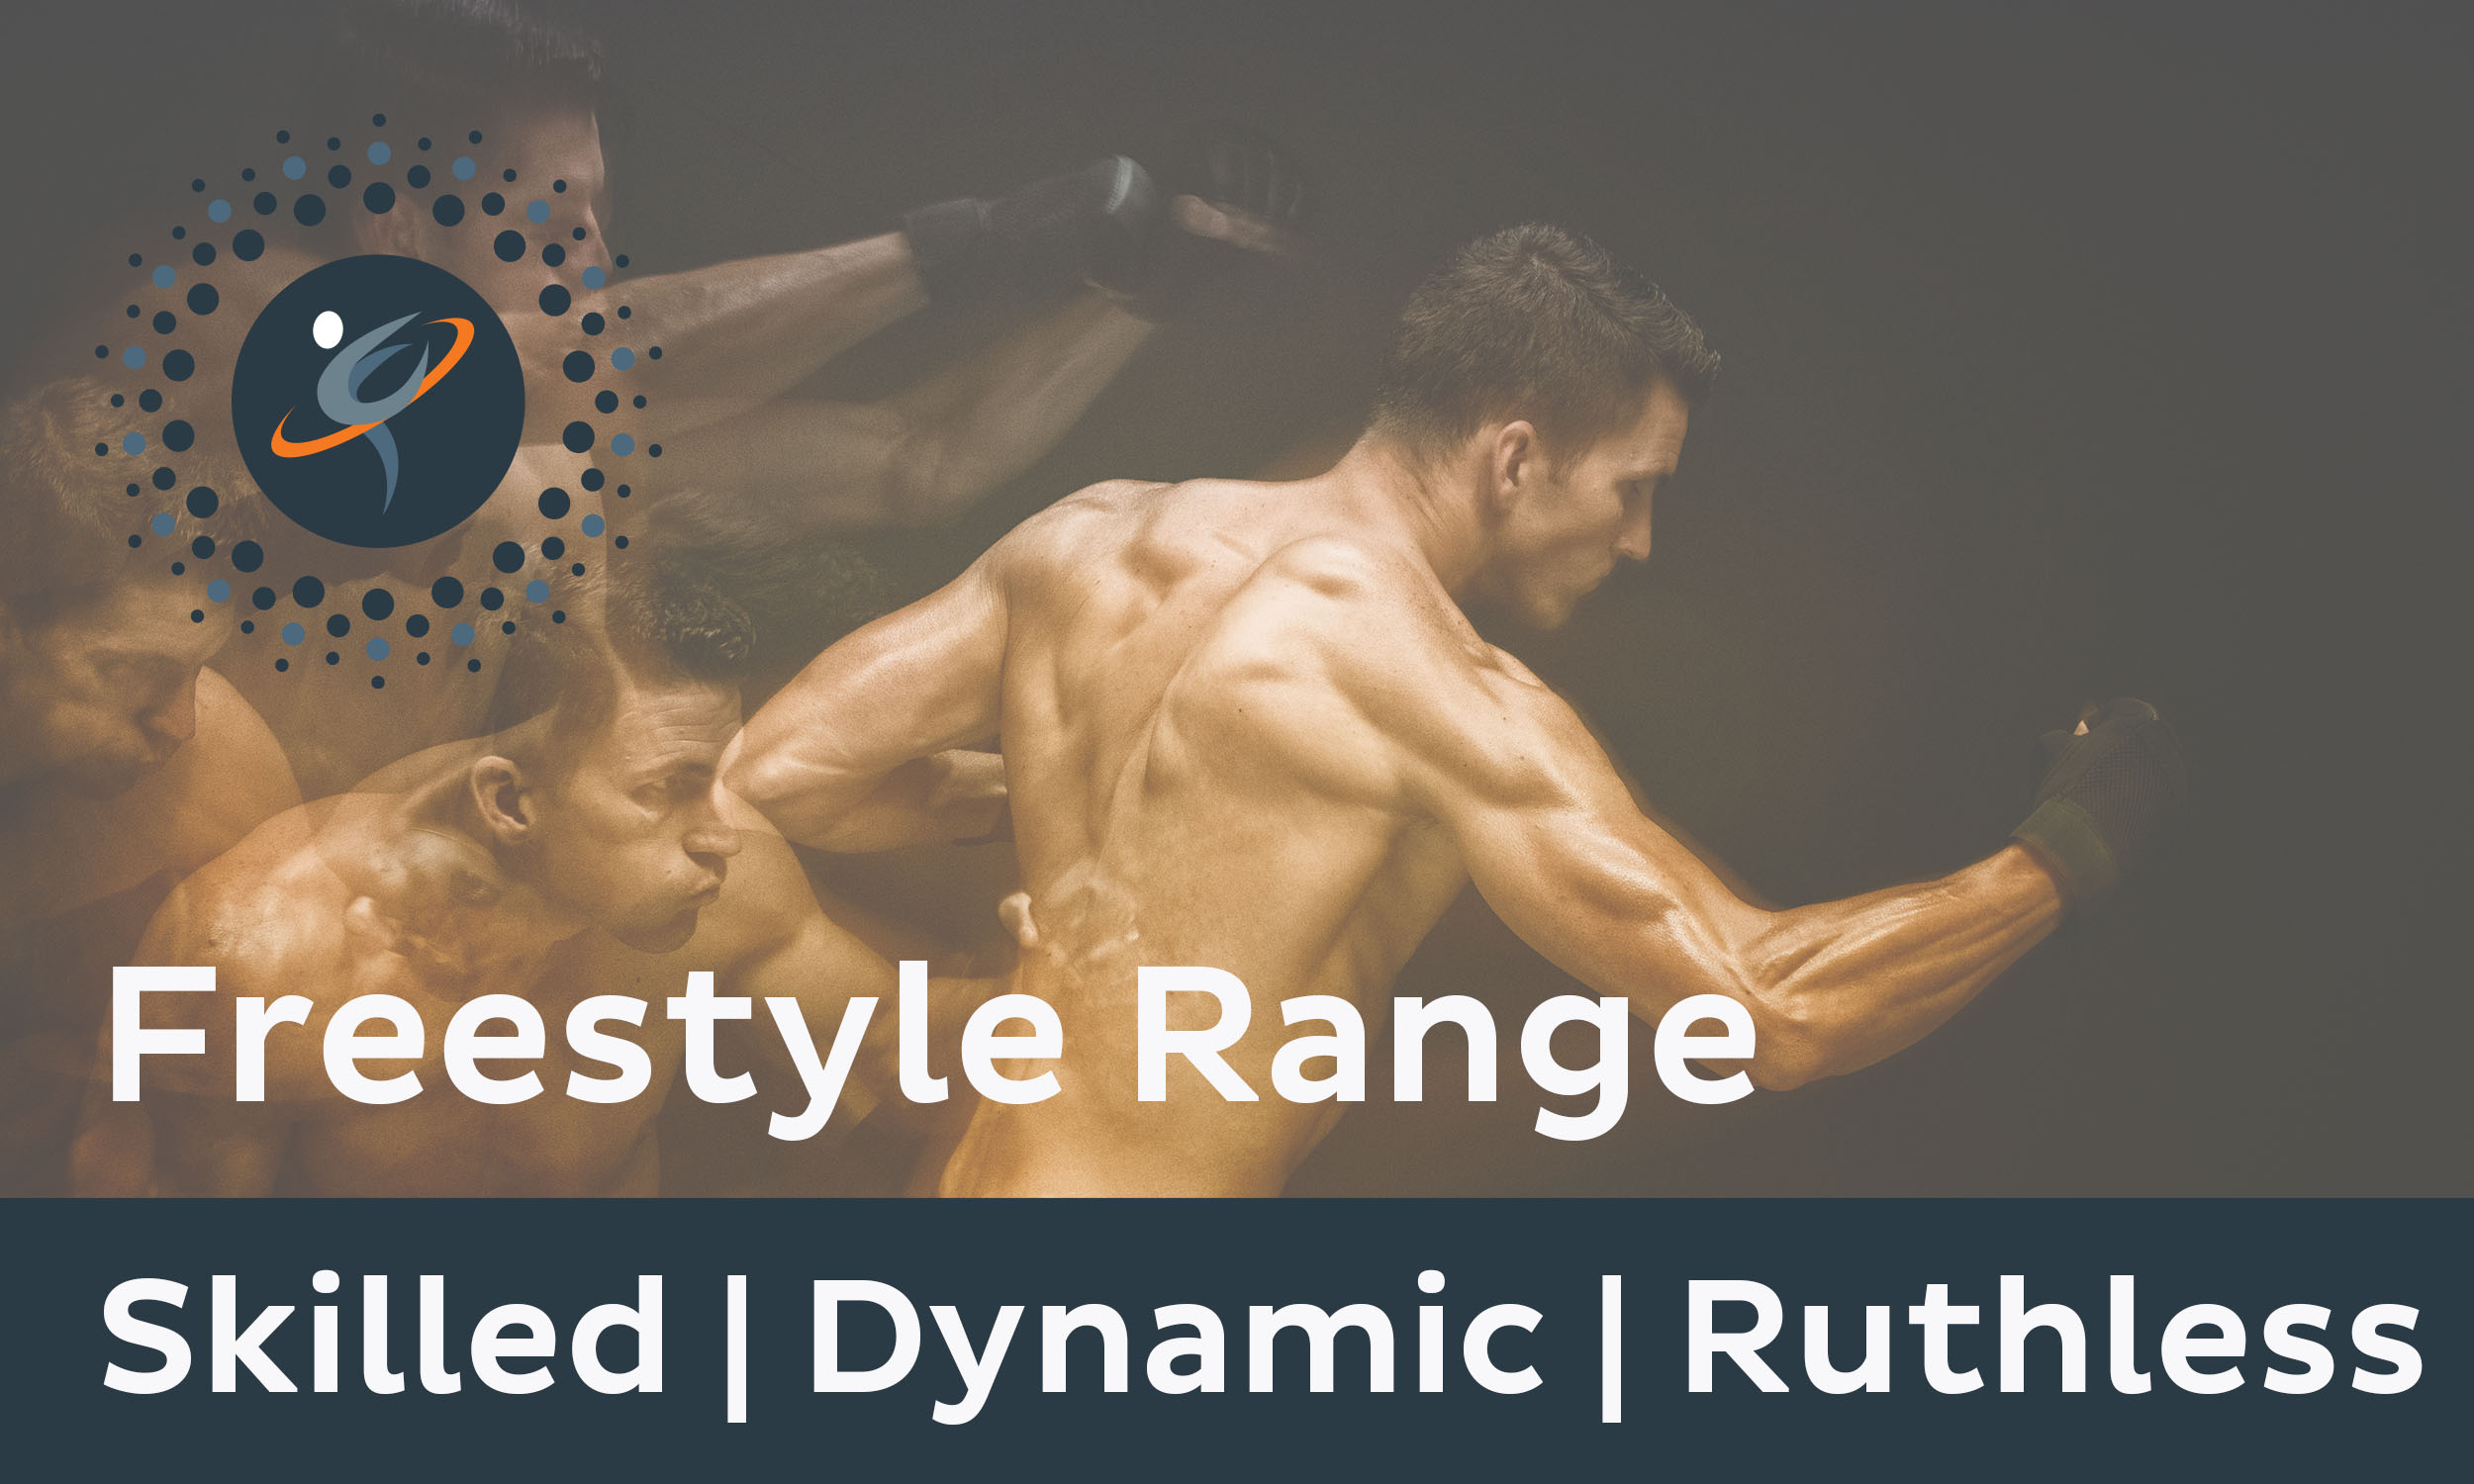 Freestyle Range